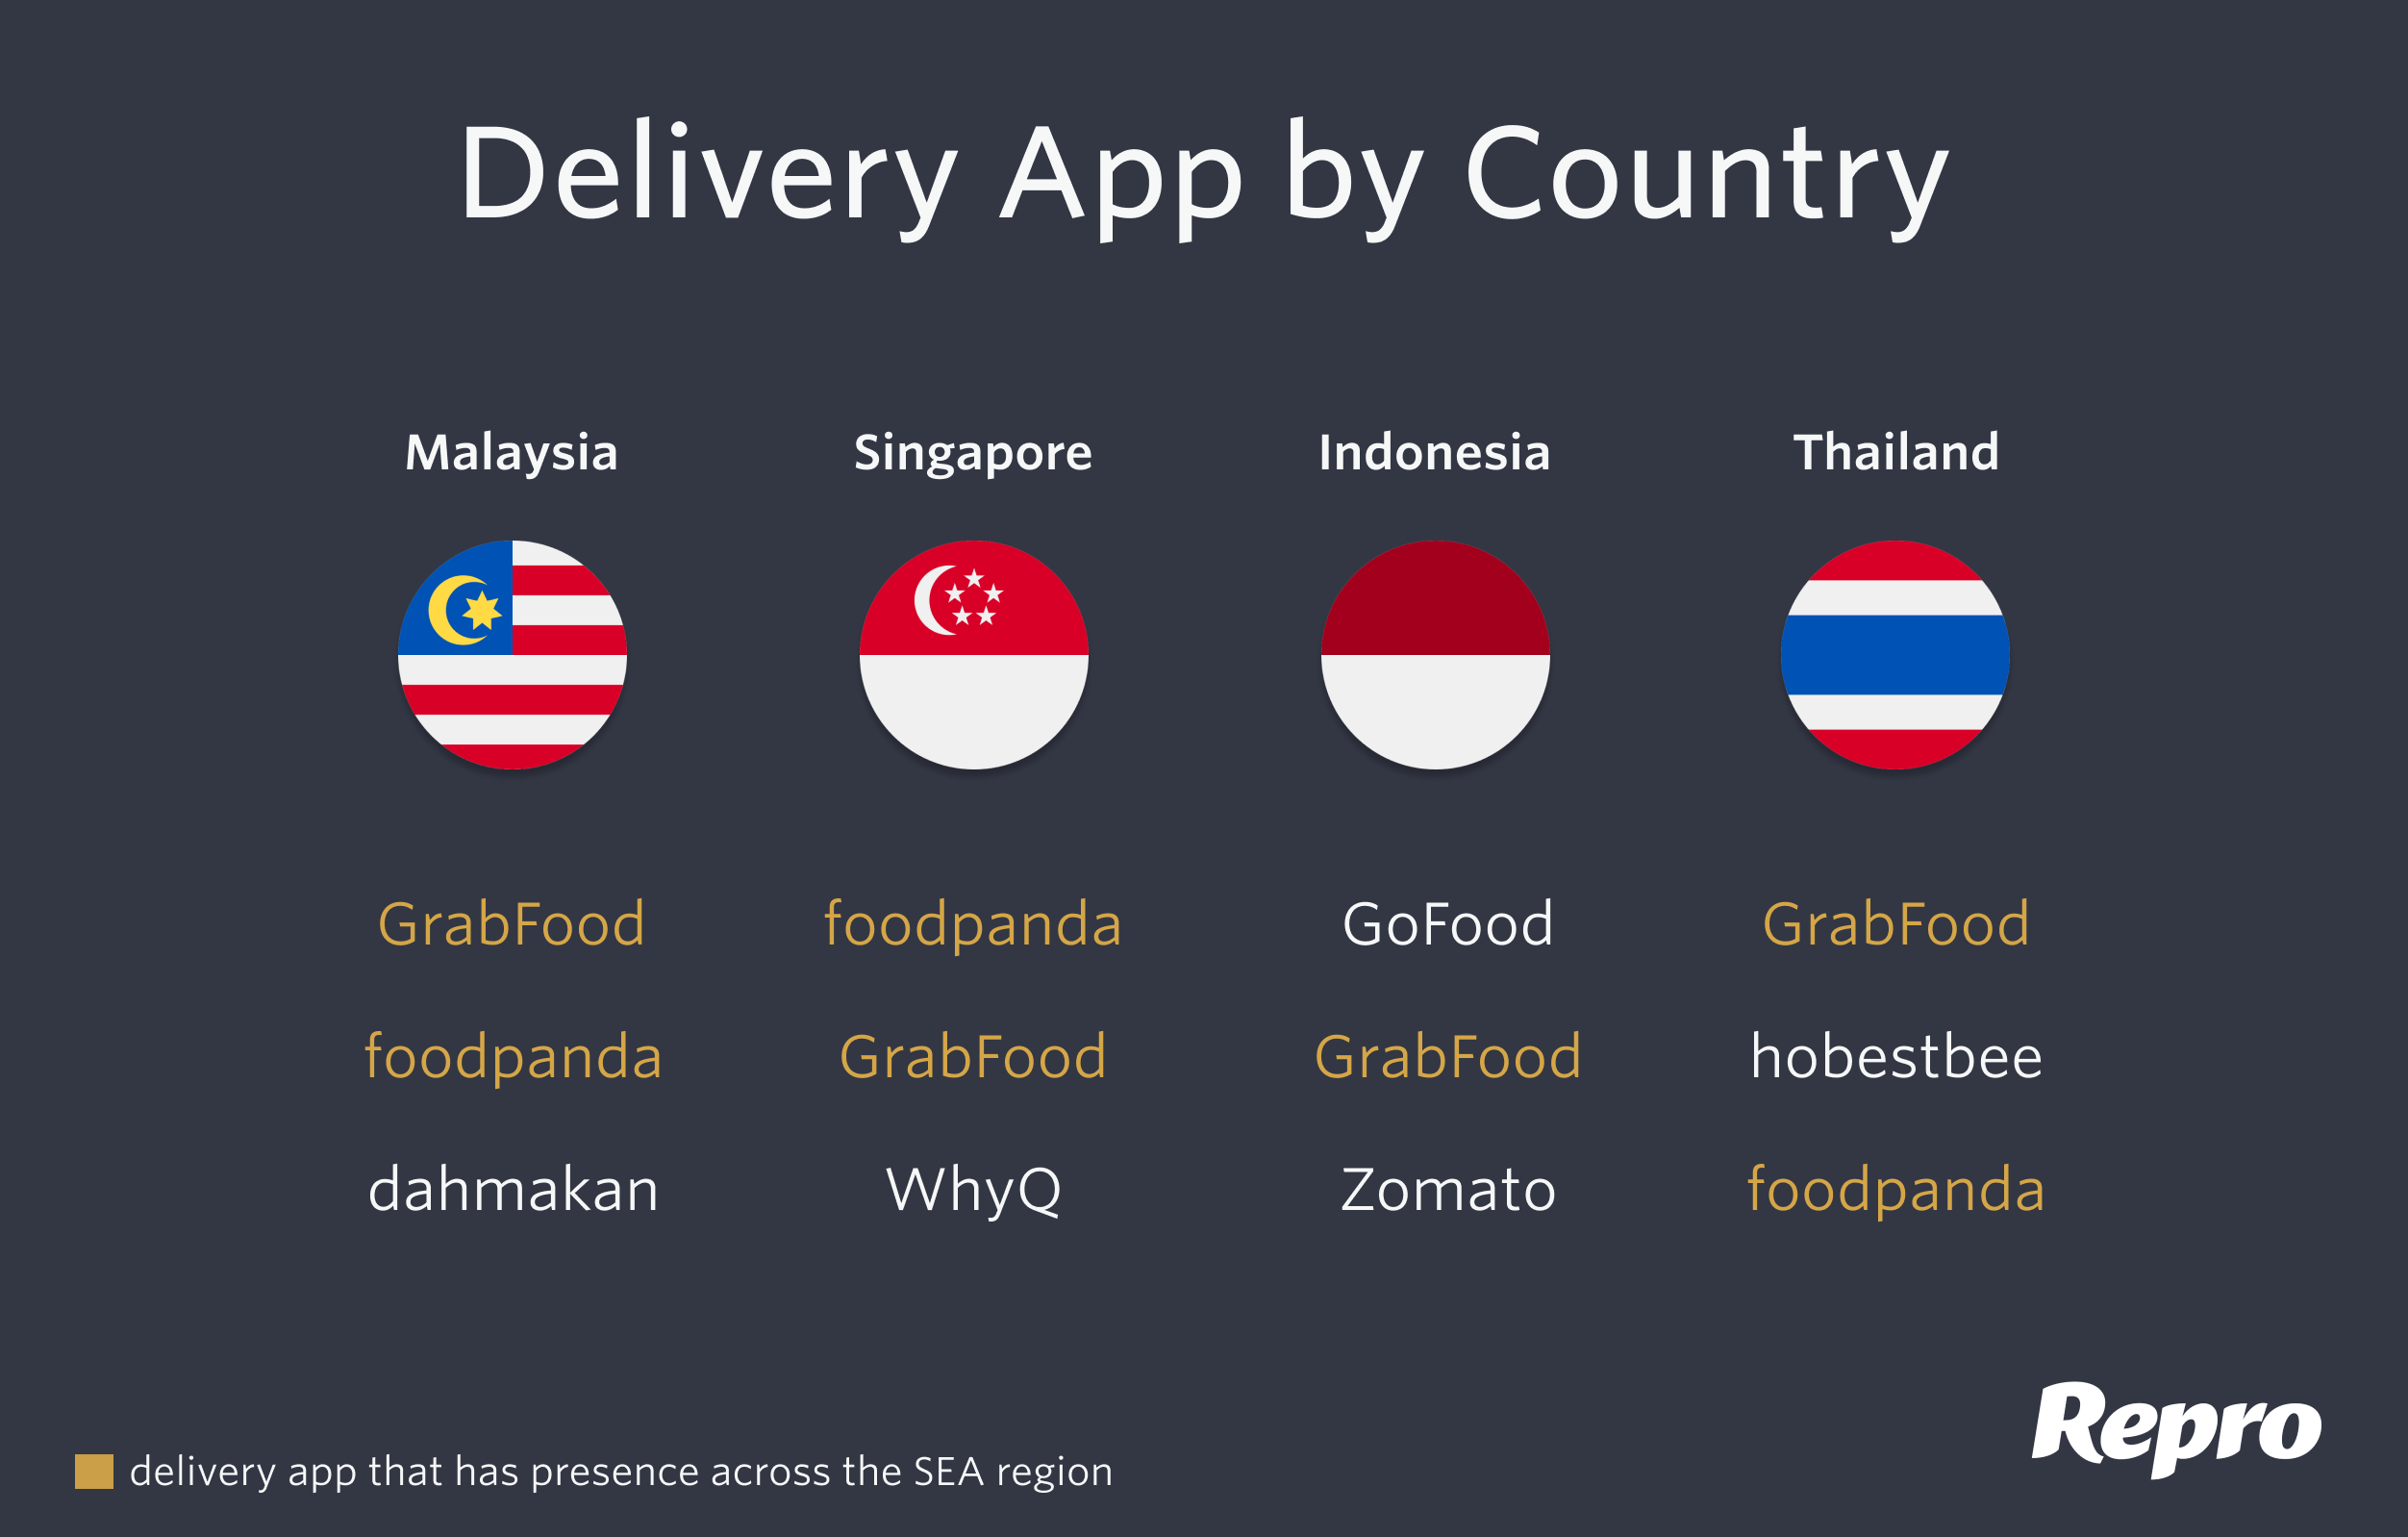 Delivery App by Country